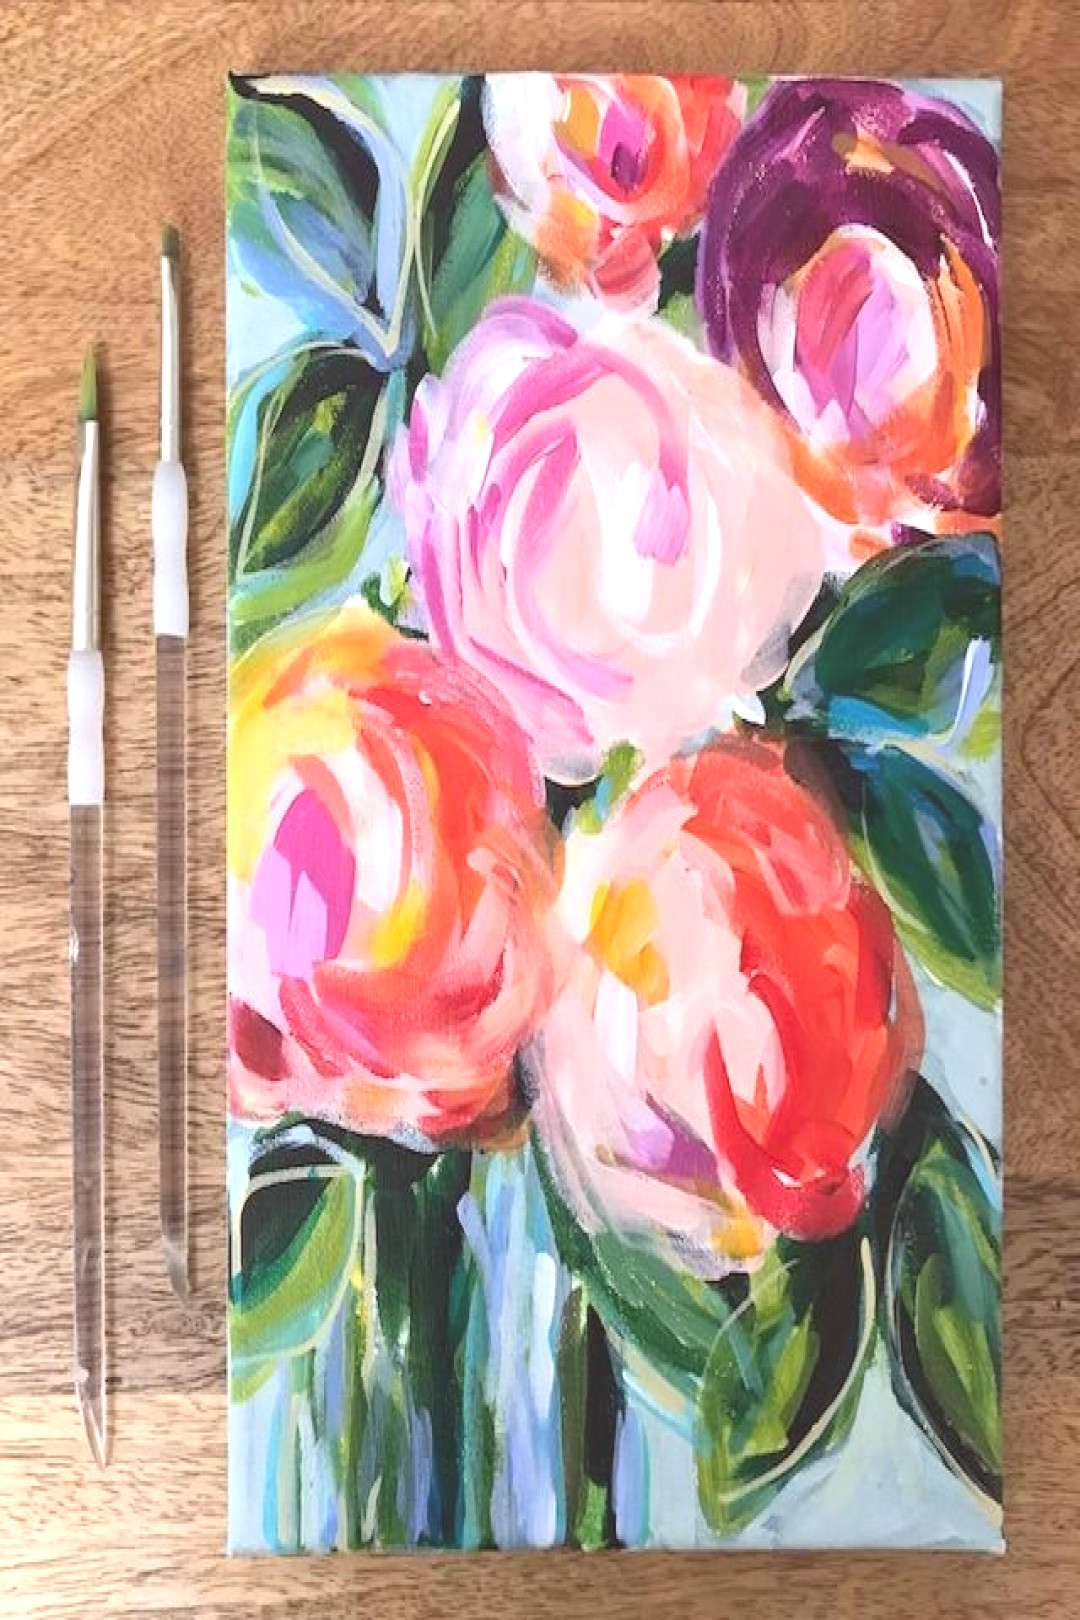 Learn How to Paint Flowers on Canvas with Acrylics the Easy Way with Step by Step Instructions